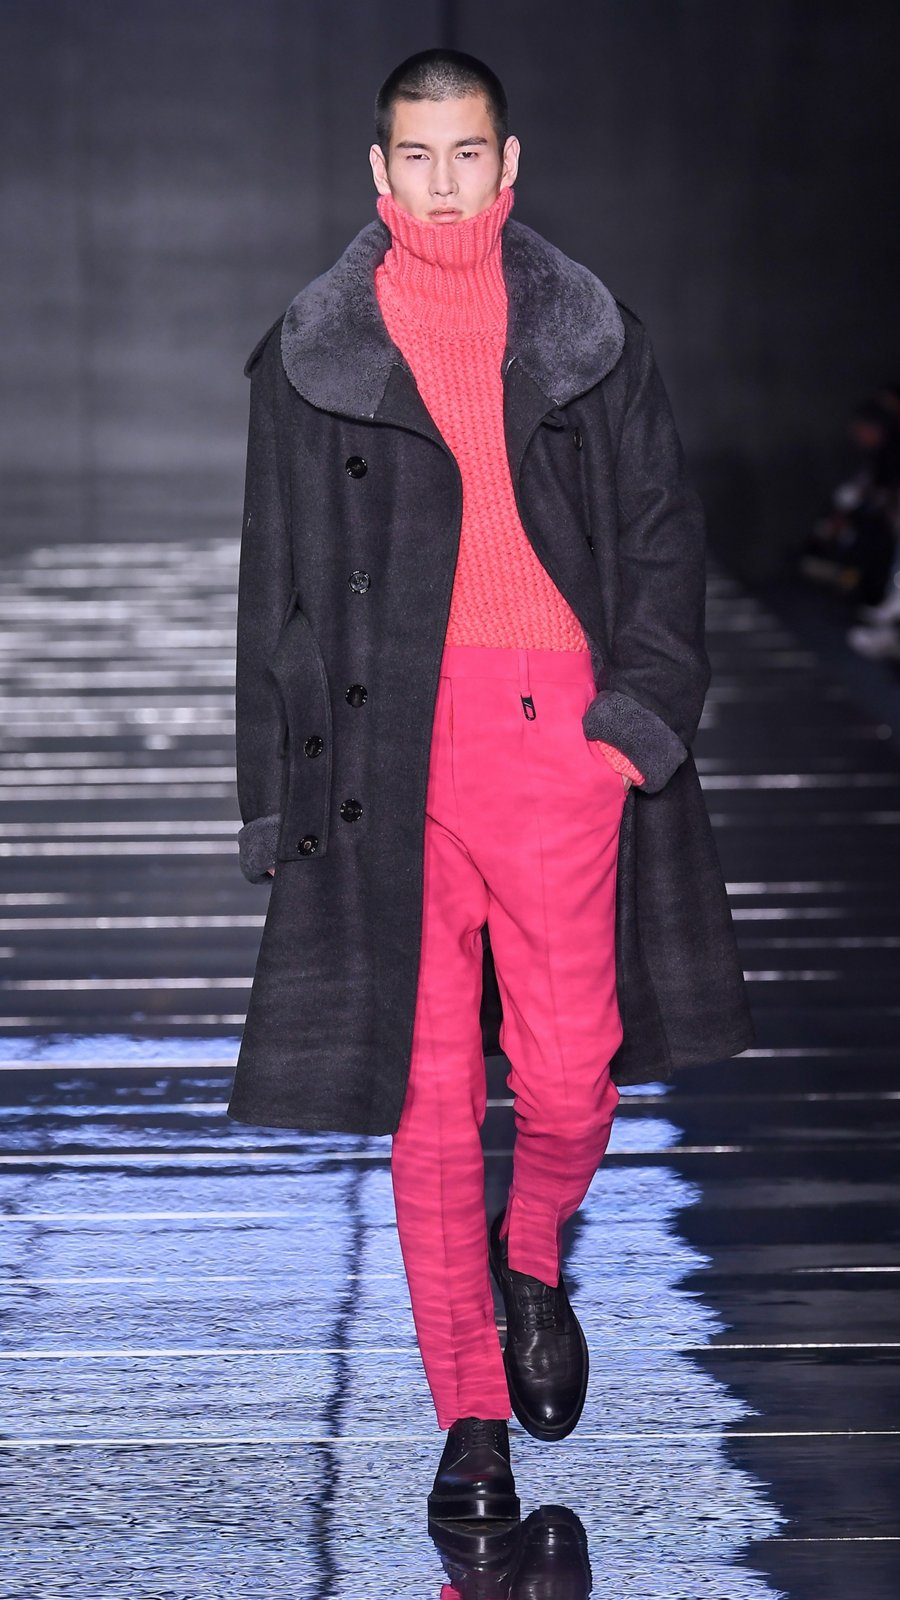 ffe3be73723f Runway look from the BOSS fashion show Fall Winter 2019 ...